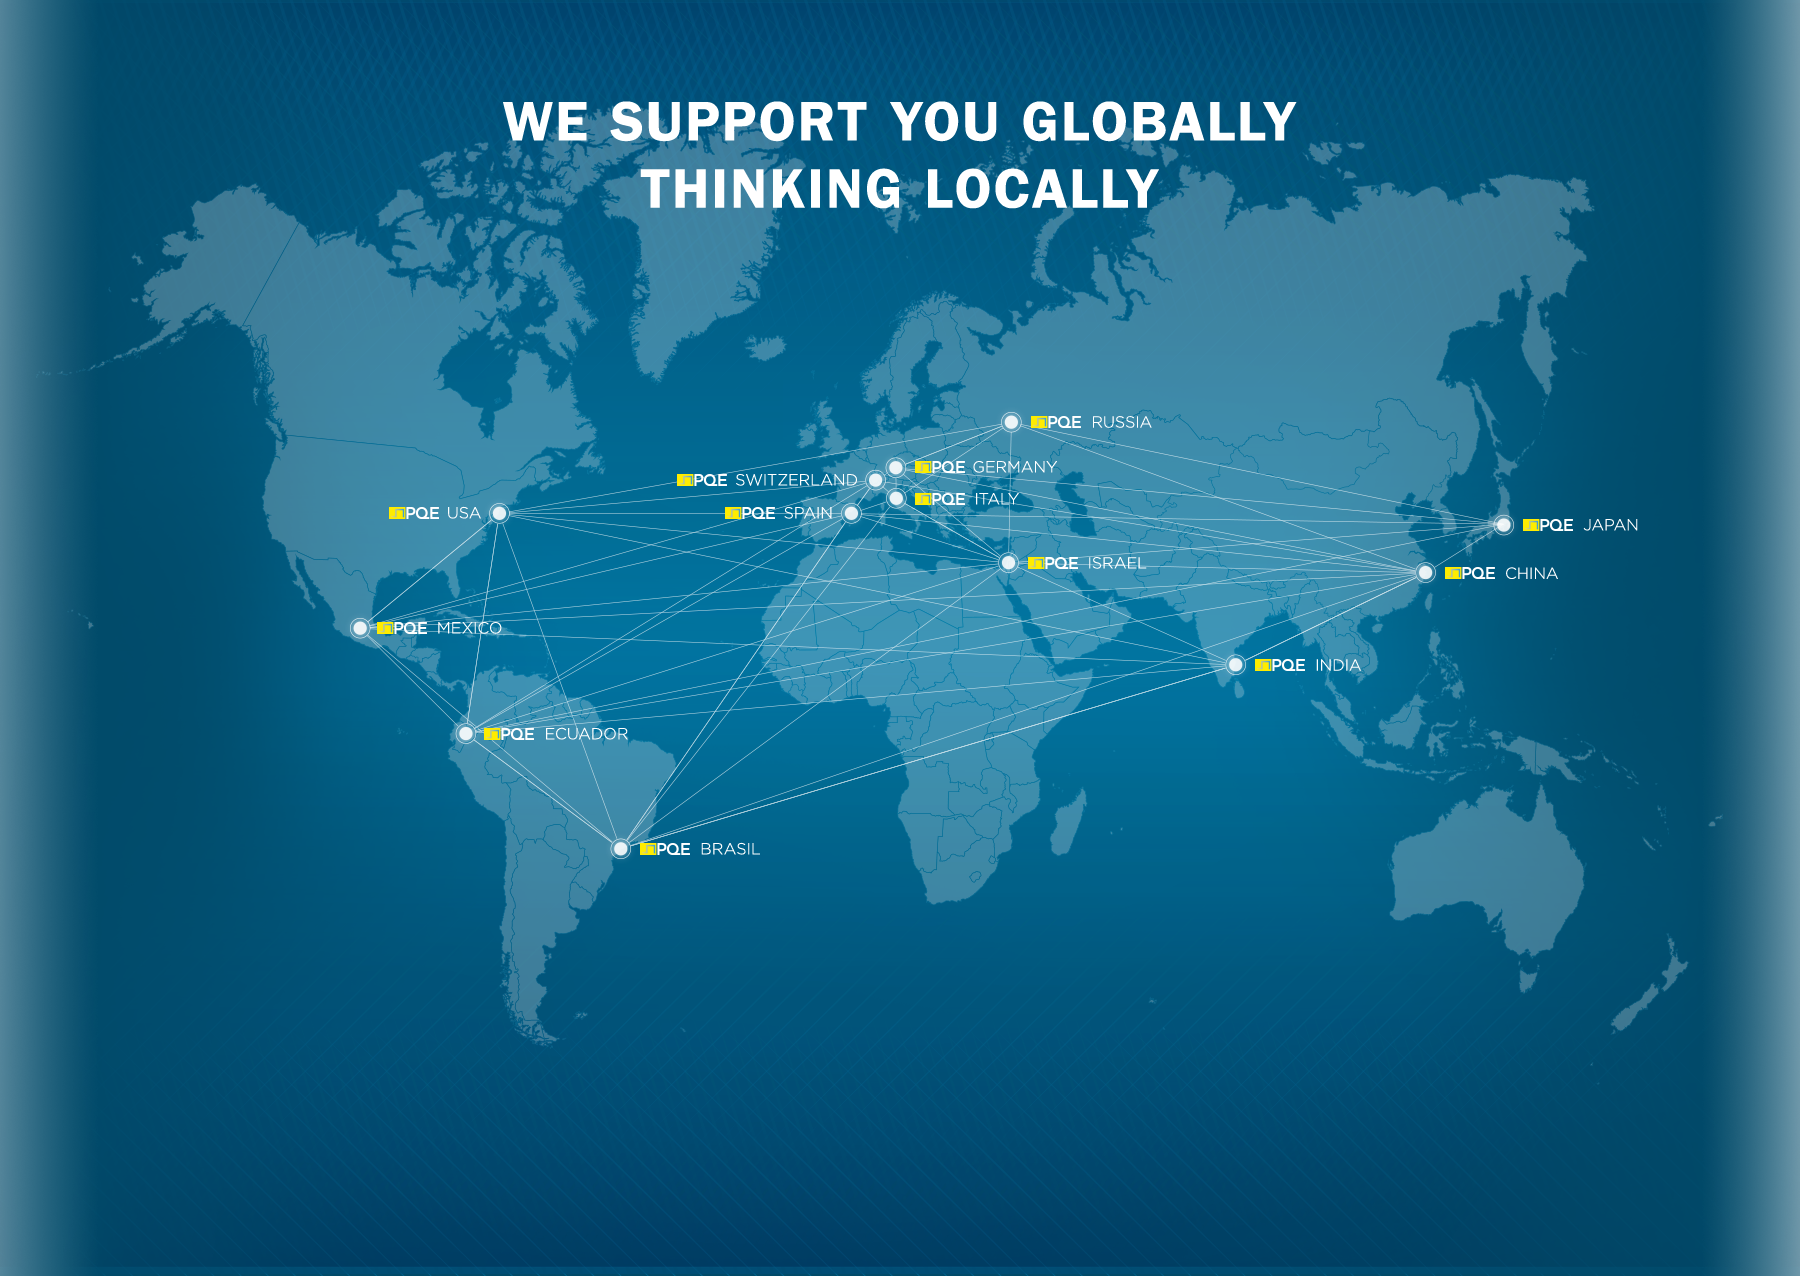 we support you globally, thinking locally